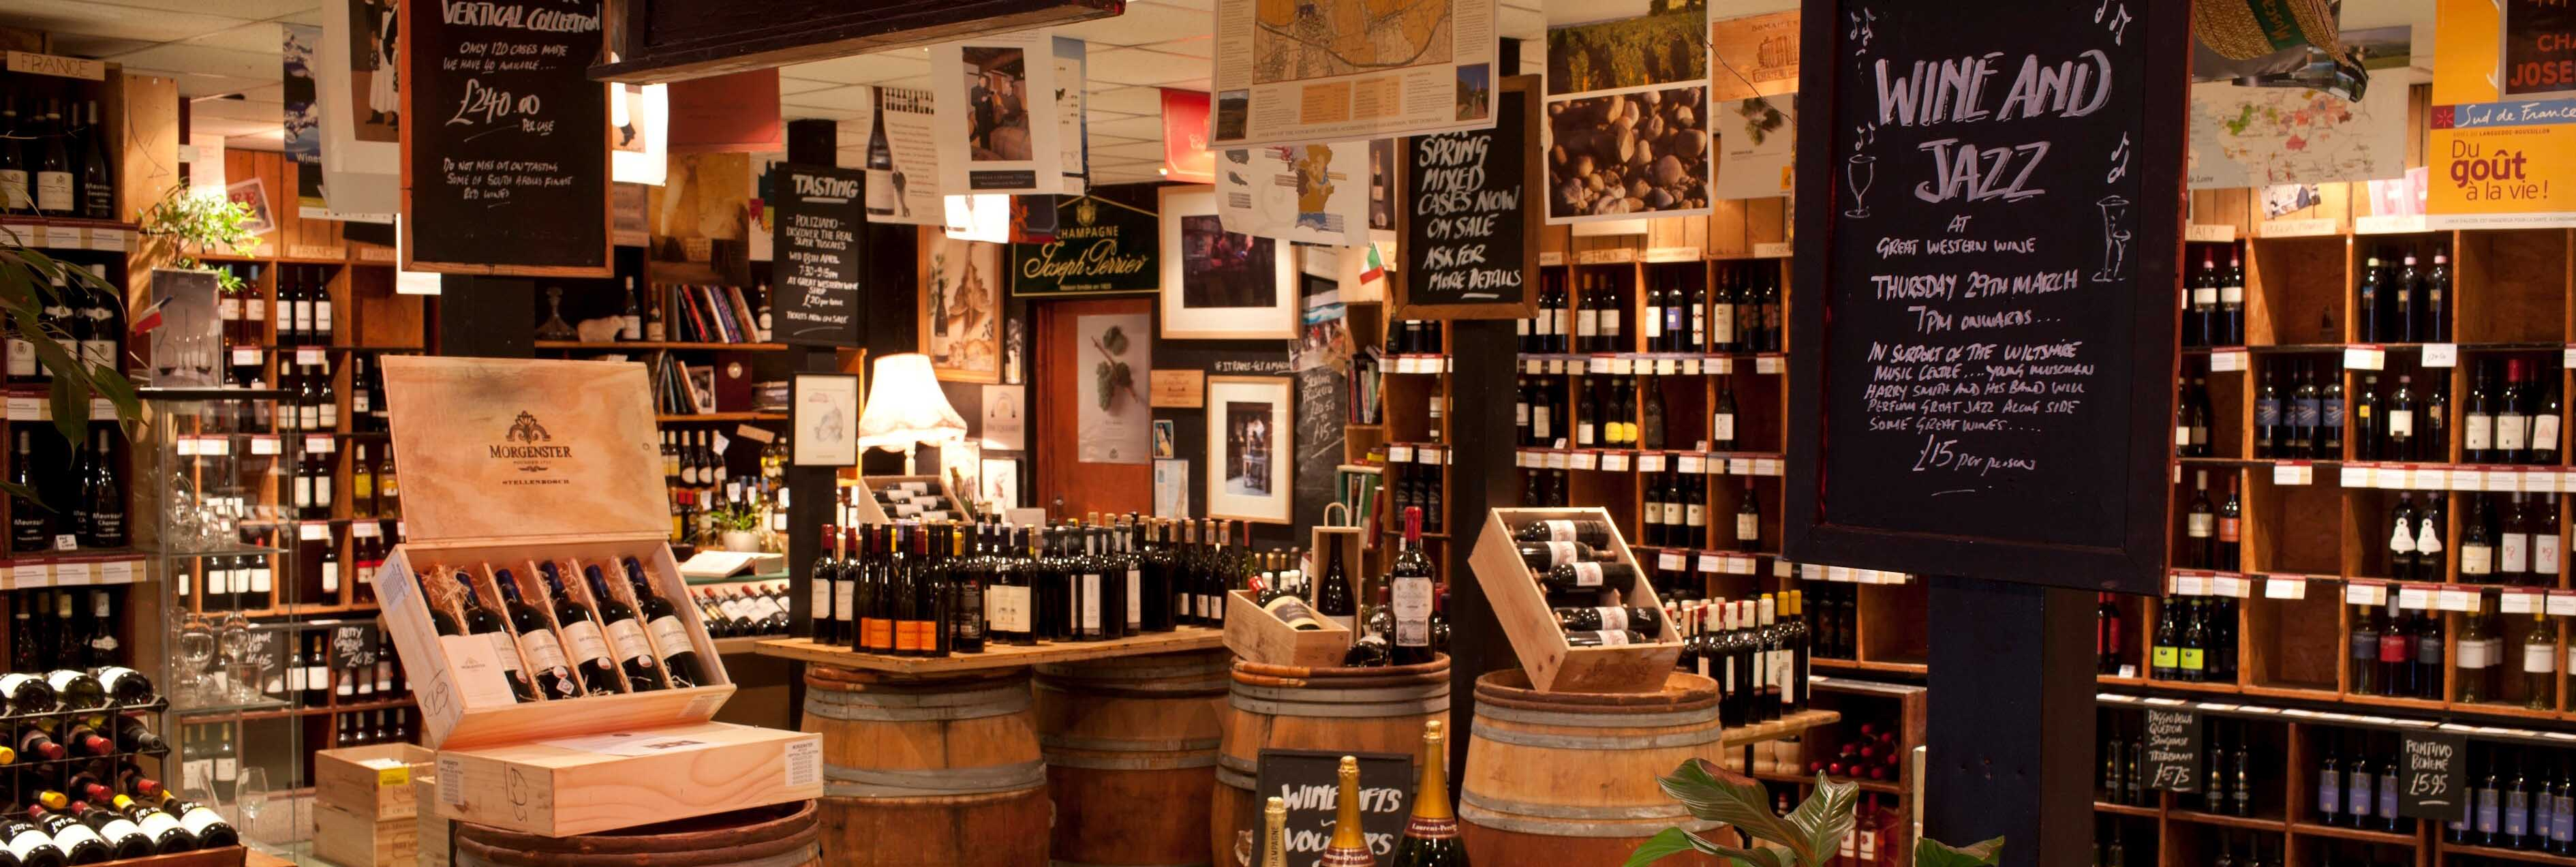 A view of the inside of the Great Wine Co. shop in Bath